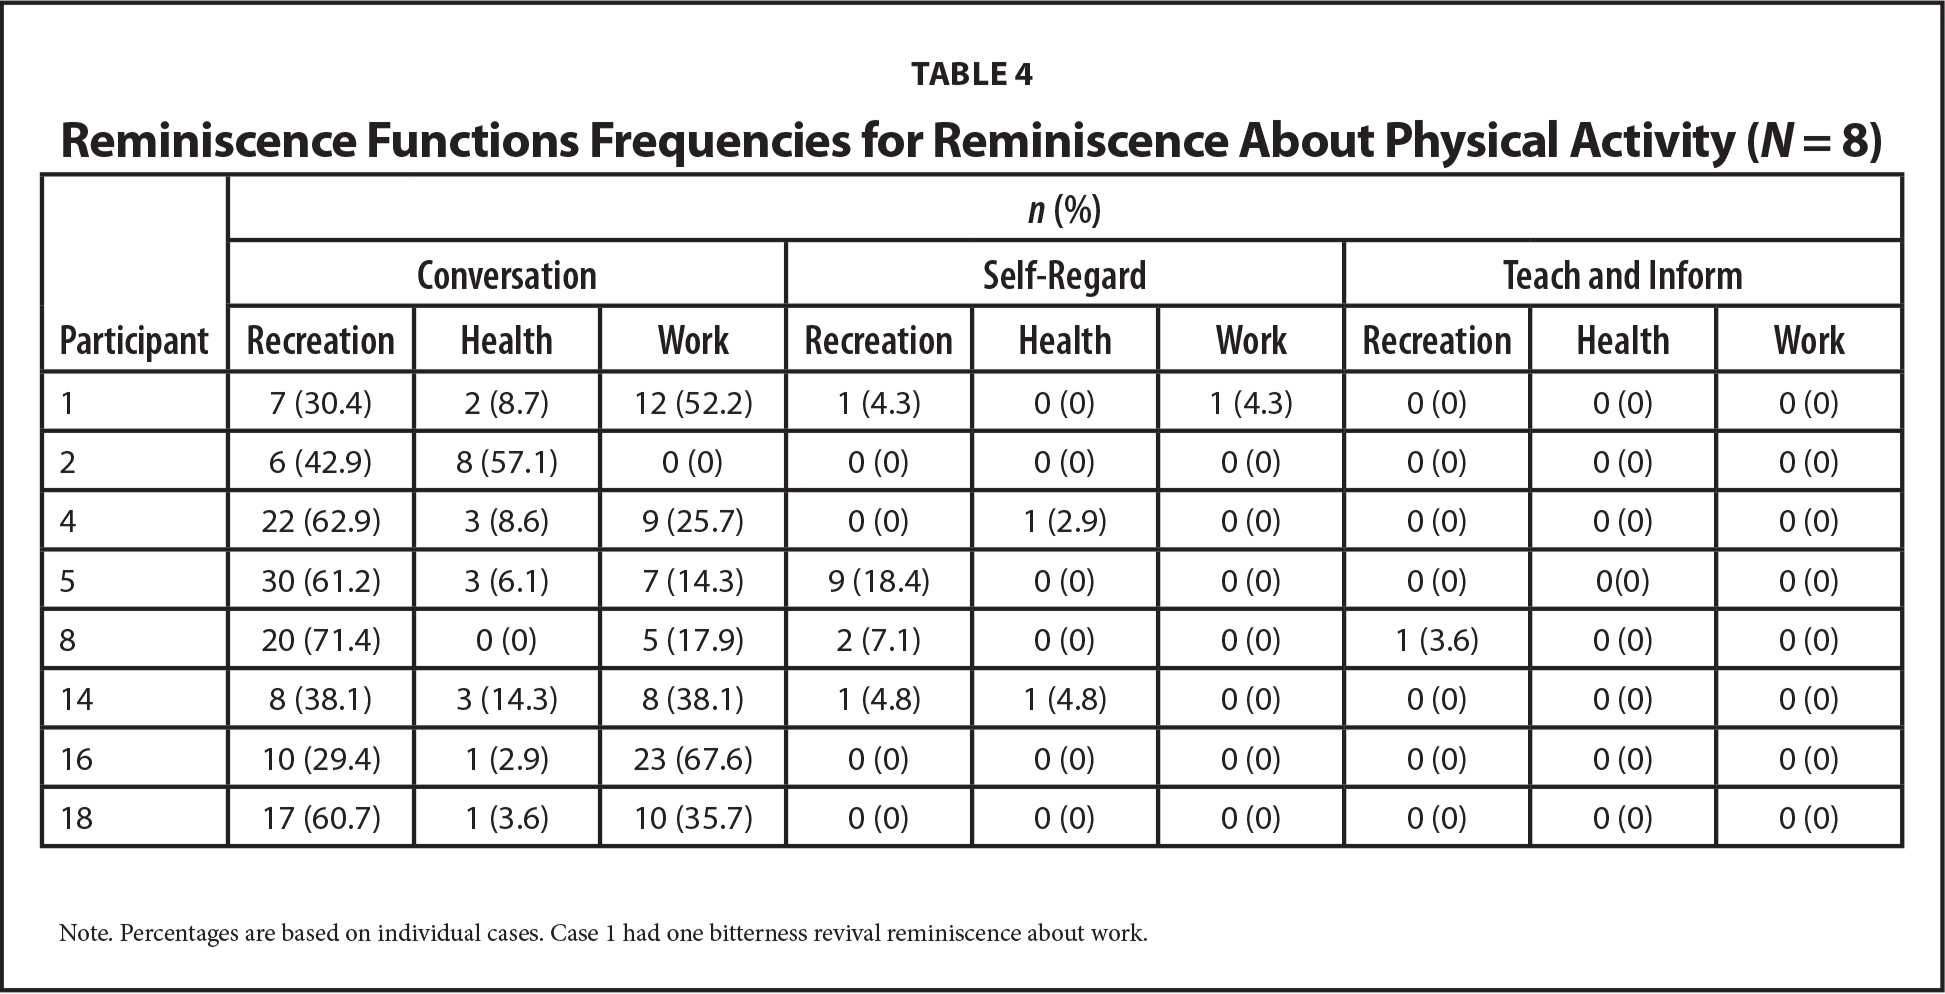 Reminiscence Functions Frequencies for Reminiscence About Physical Activity (N = 8)